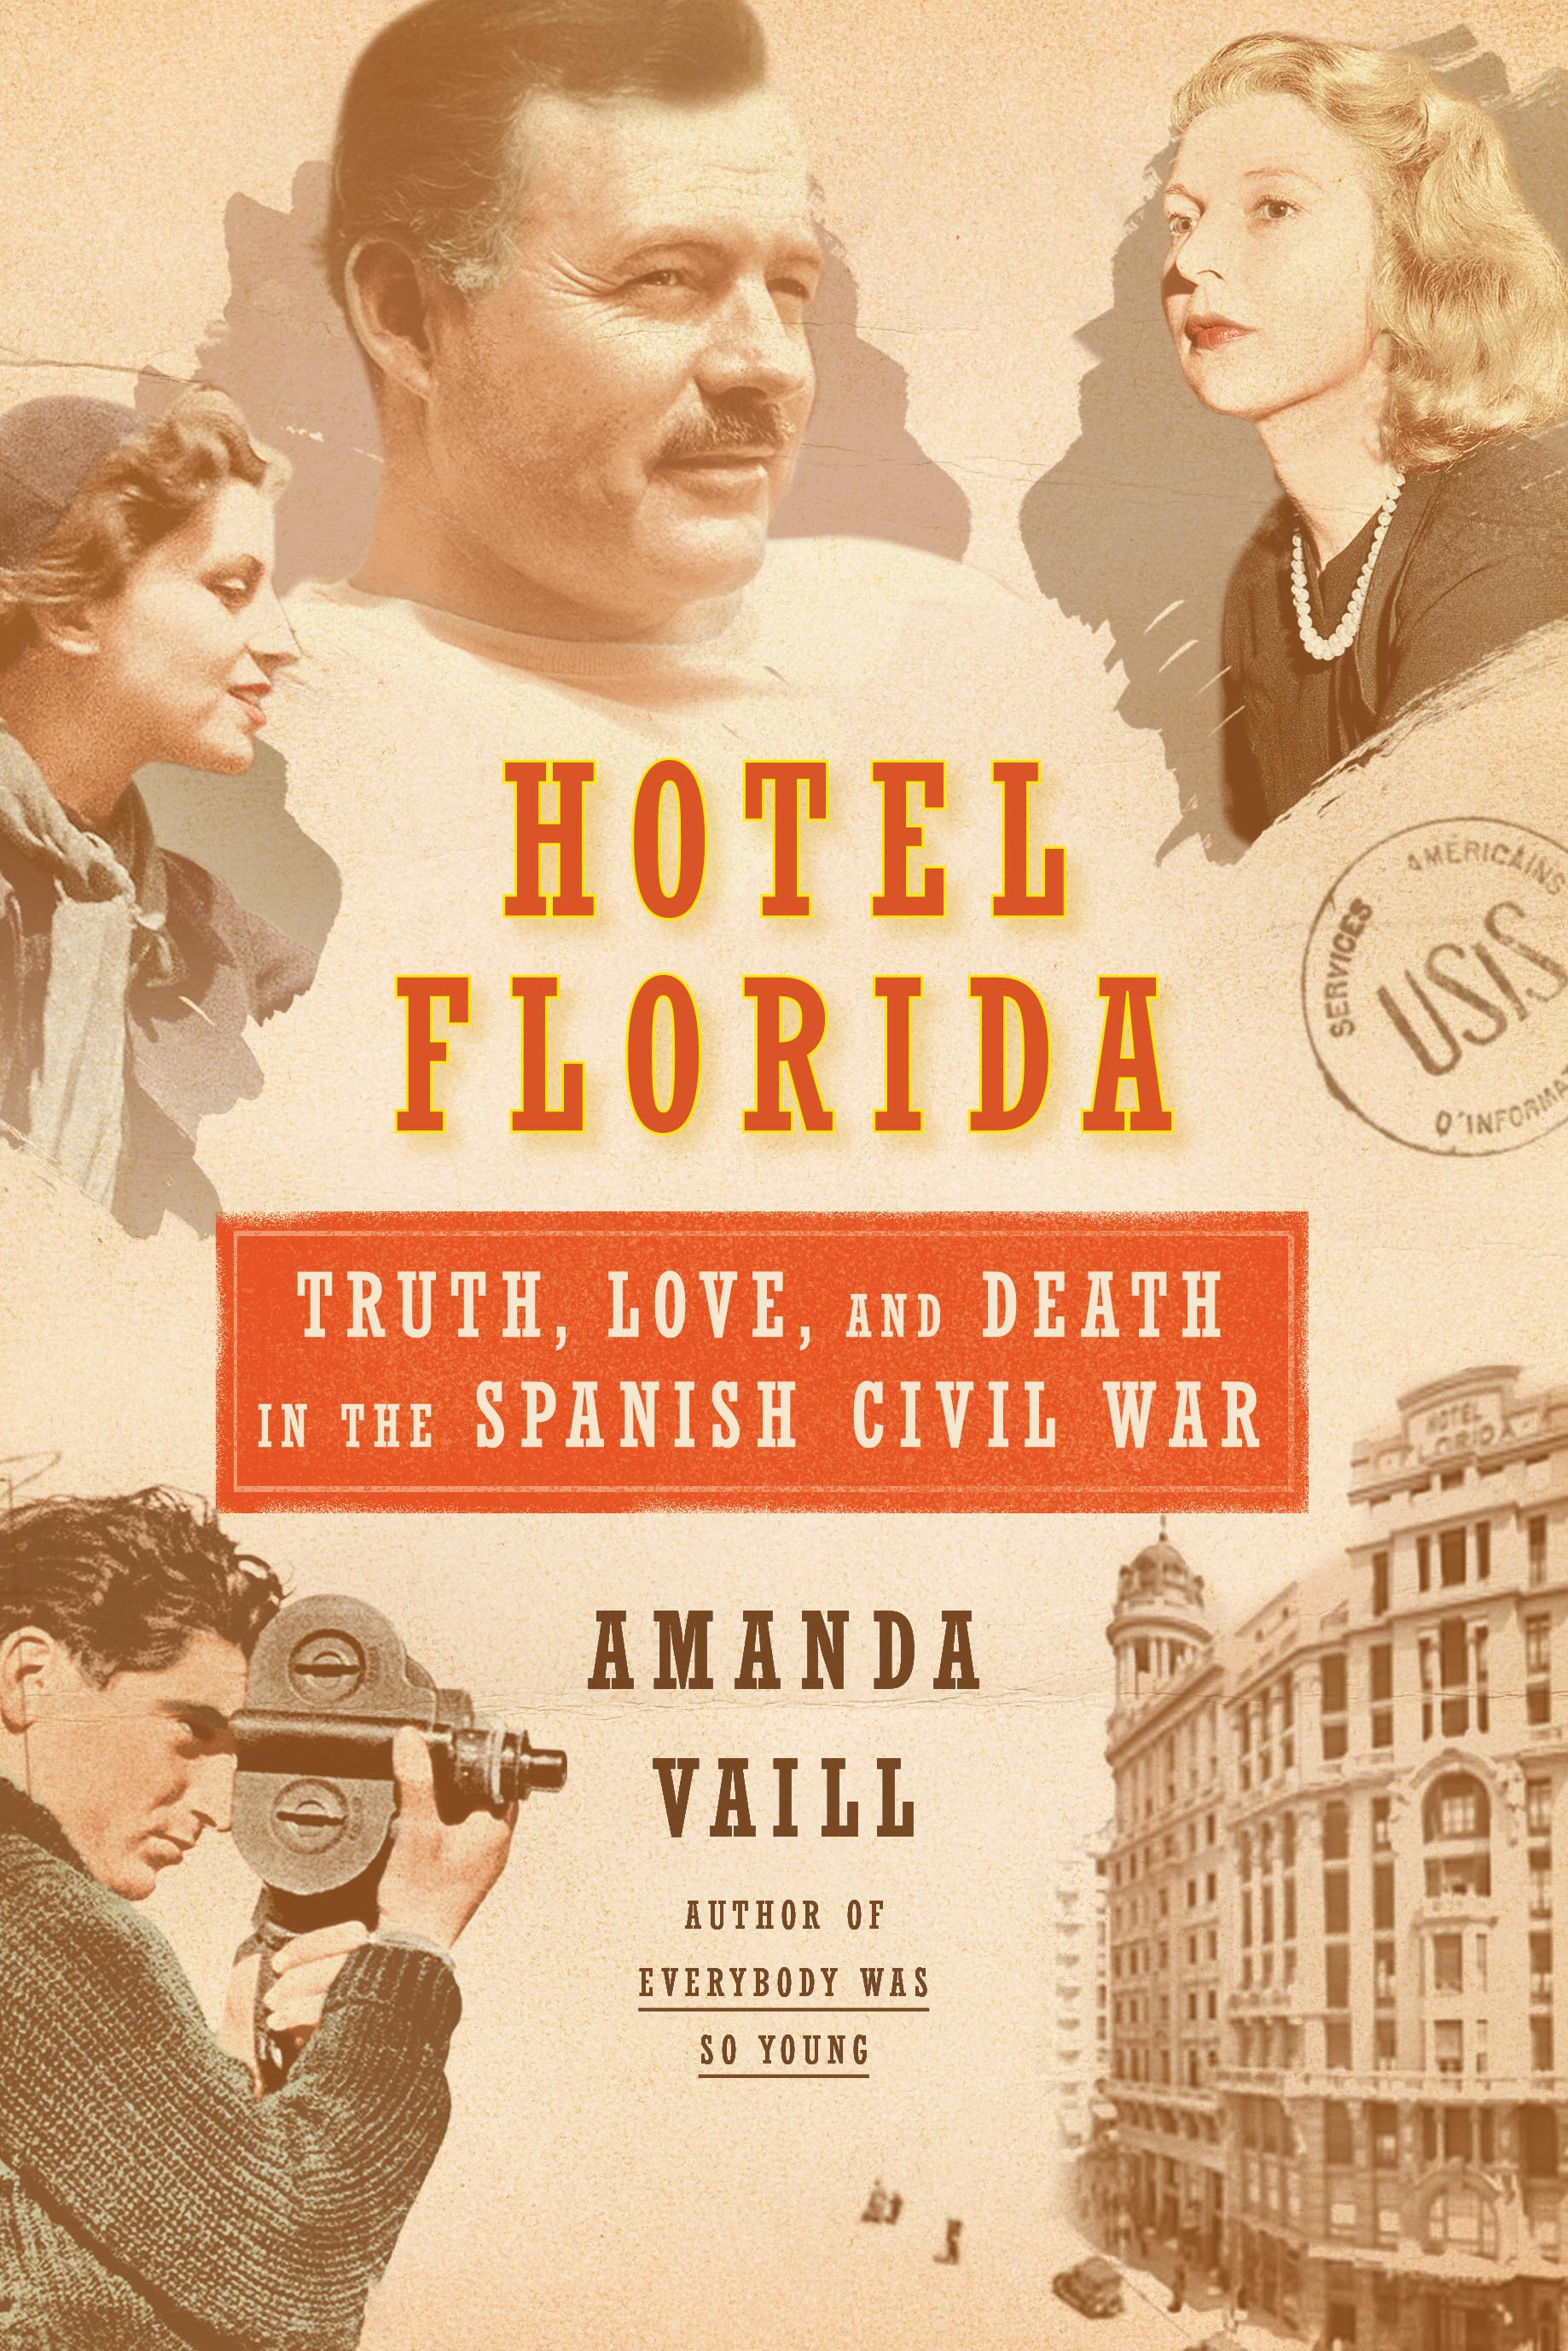 hotel florida in the spanish civil war ‹ architects and artisans hotelflorida